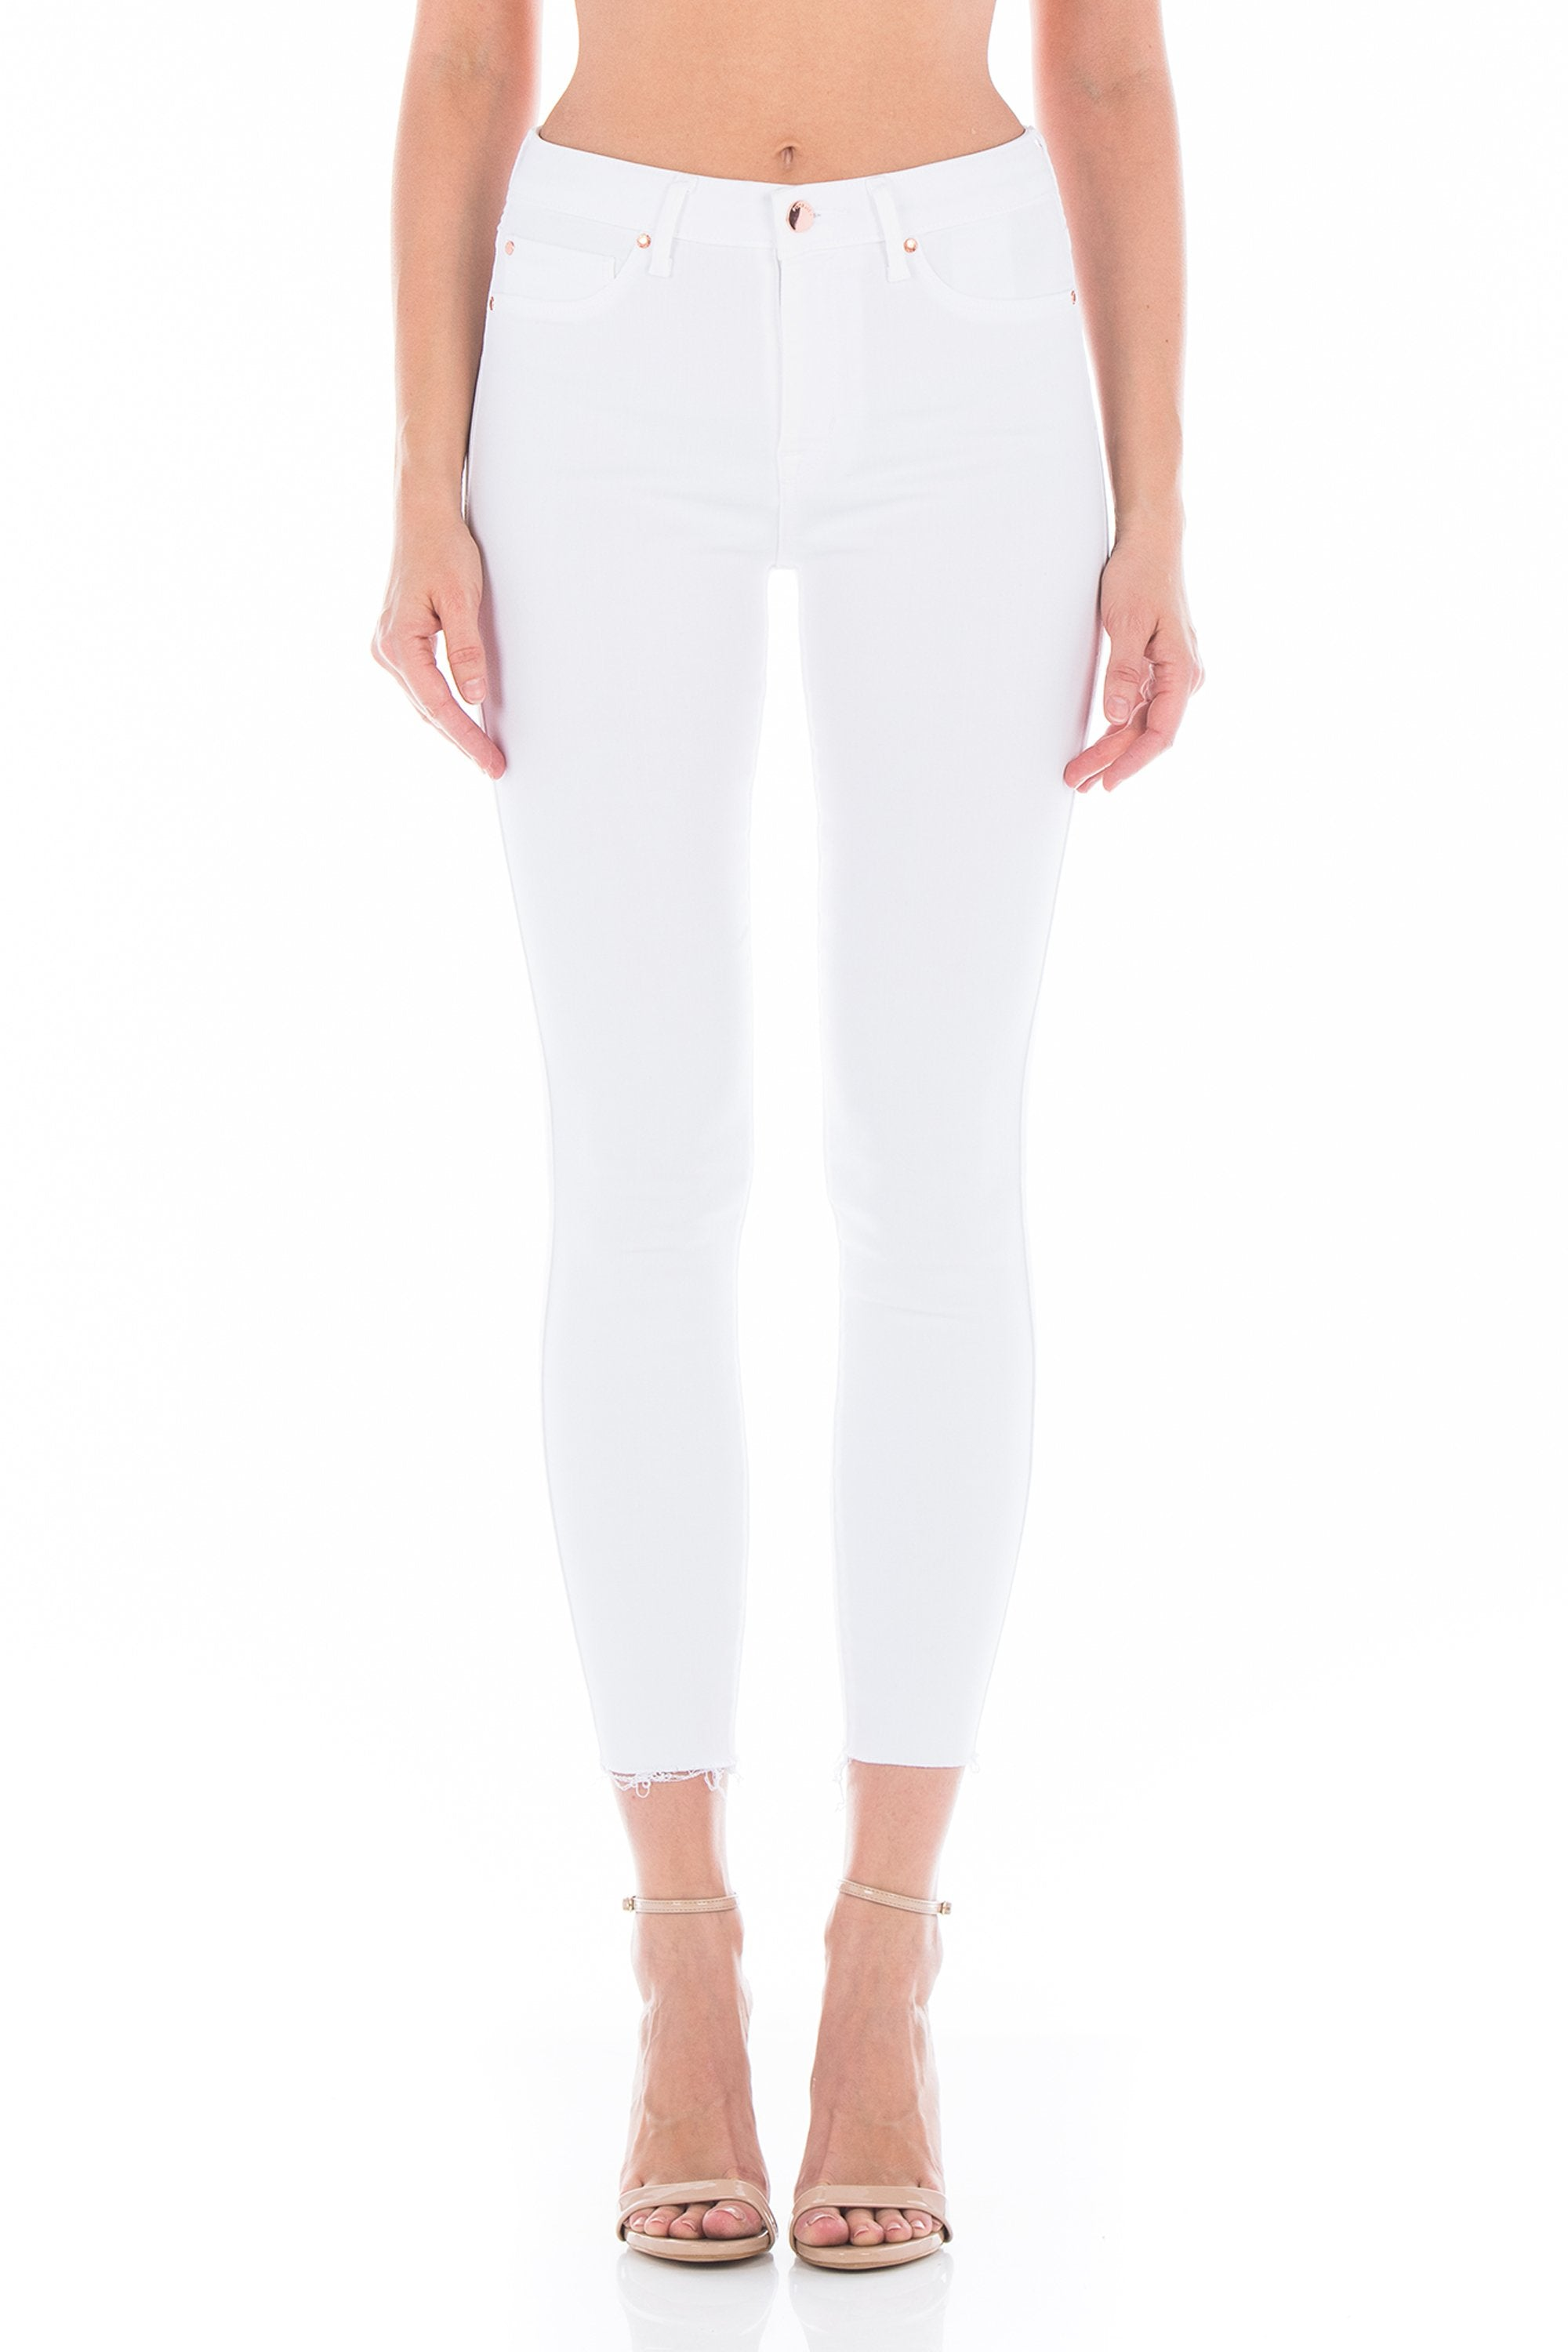 Fidelity Gwen Crop High Rise Skinny Denim - Izzy & Gab